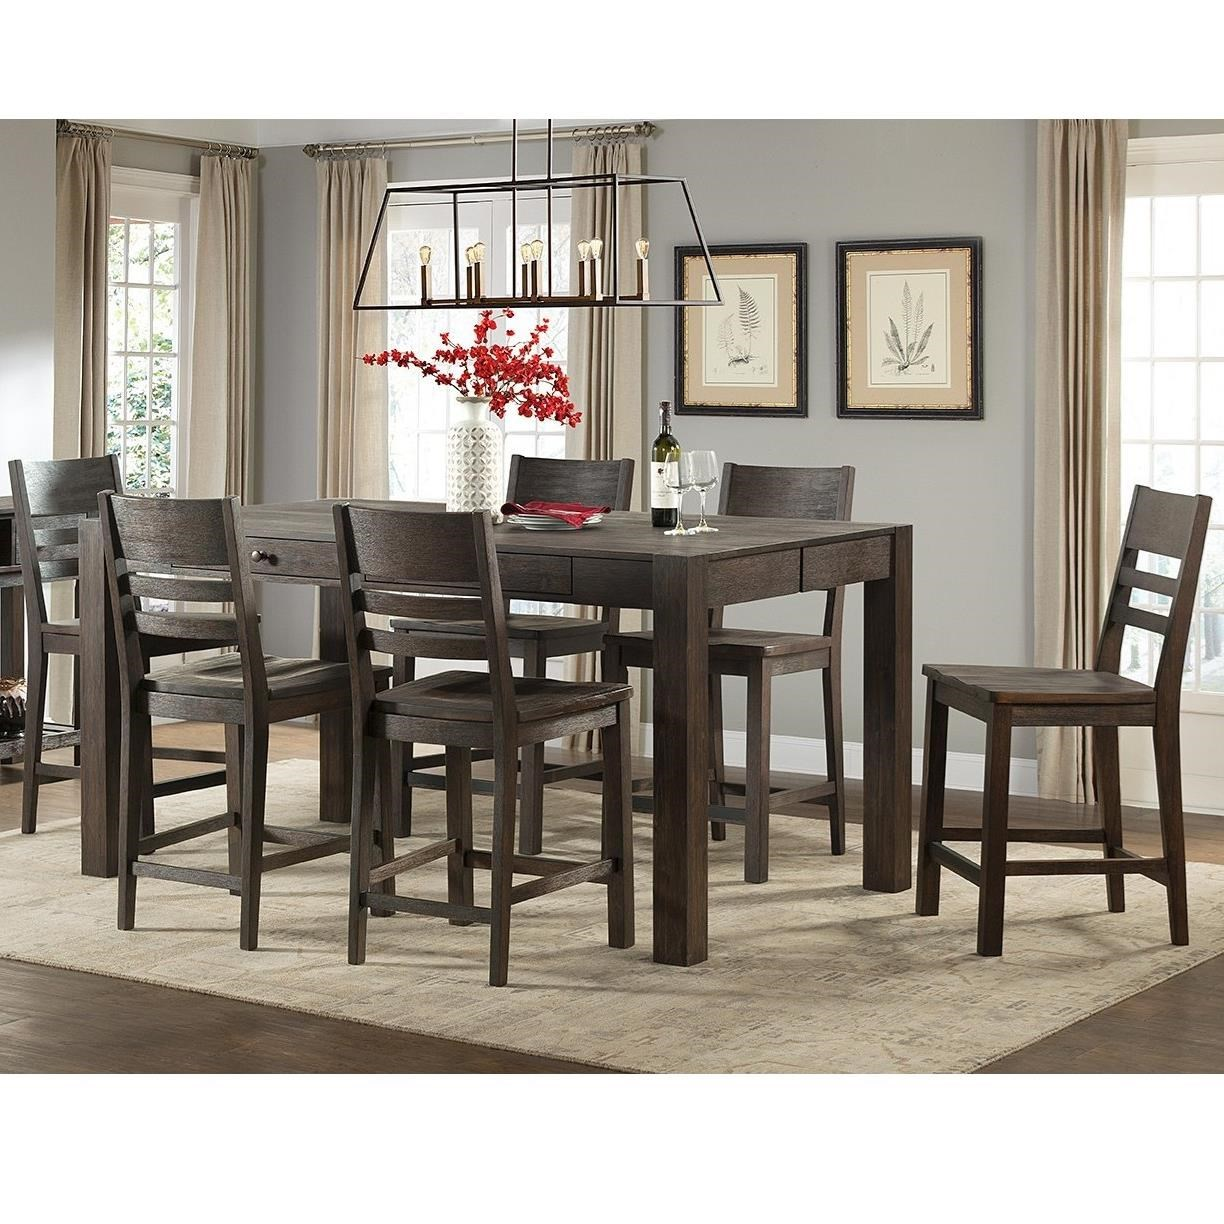 Intercon Salem7 Piece Gathering Height Table And Stool Set ...